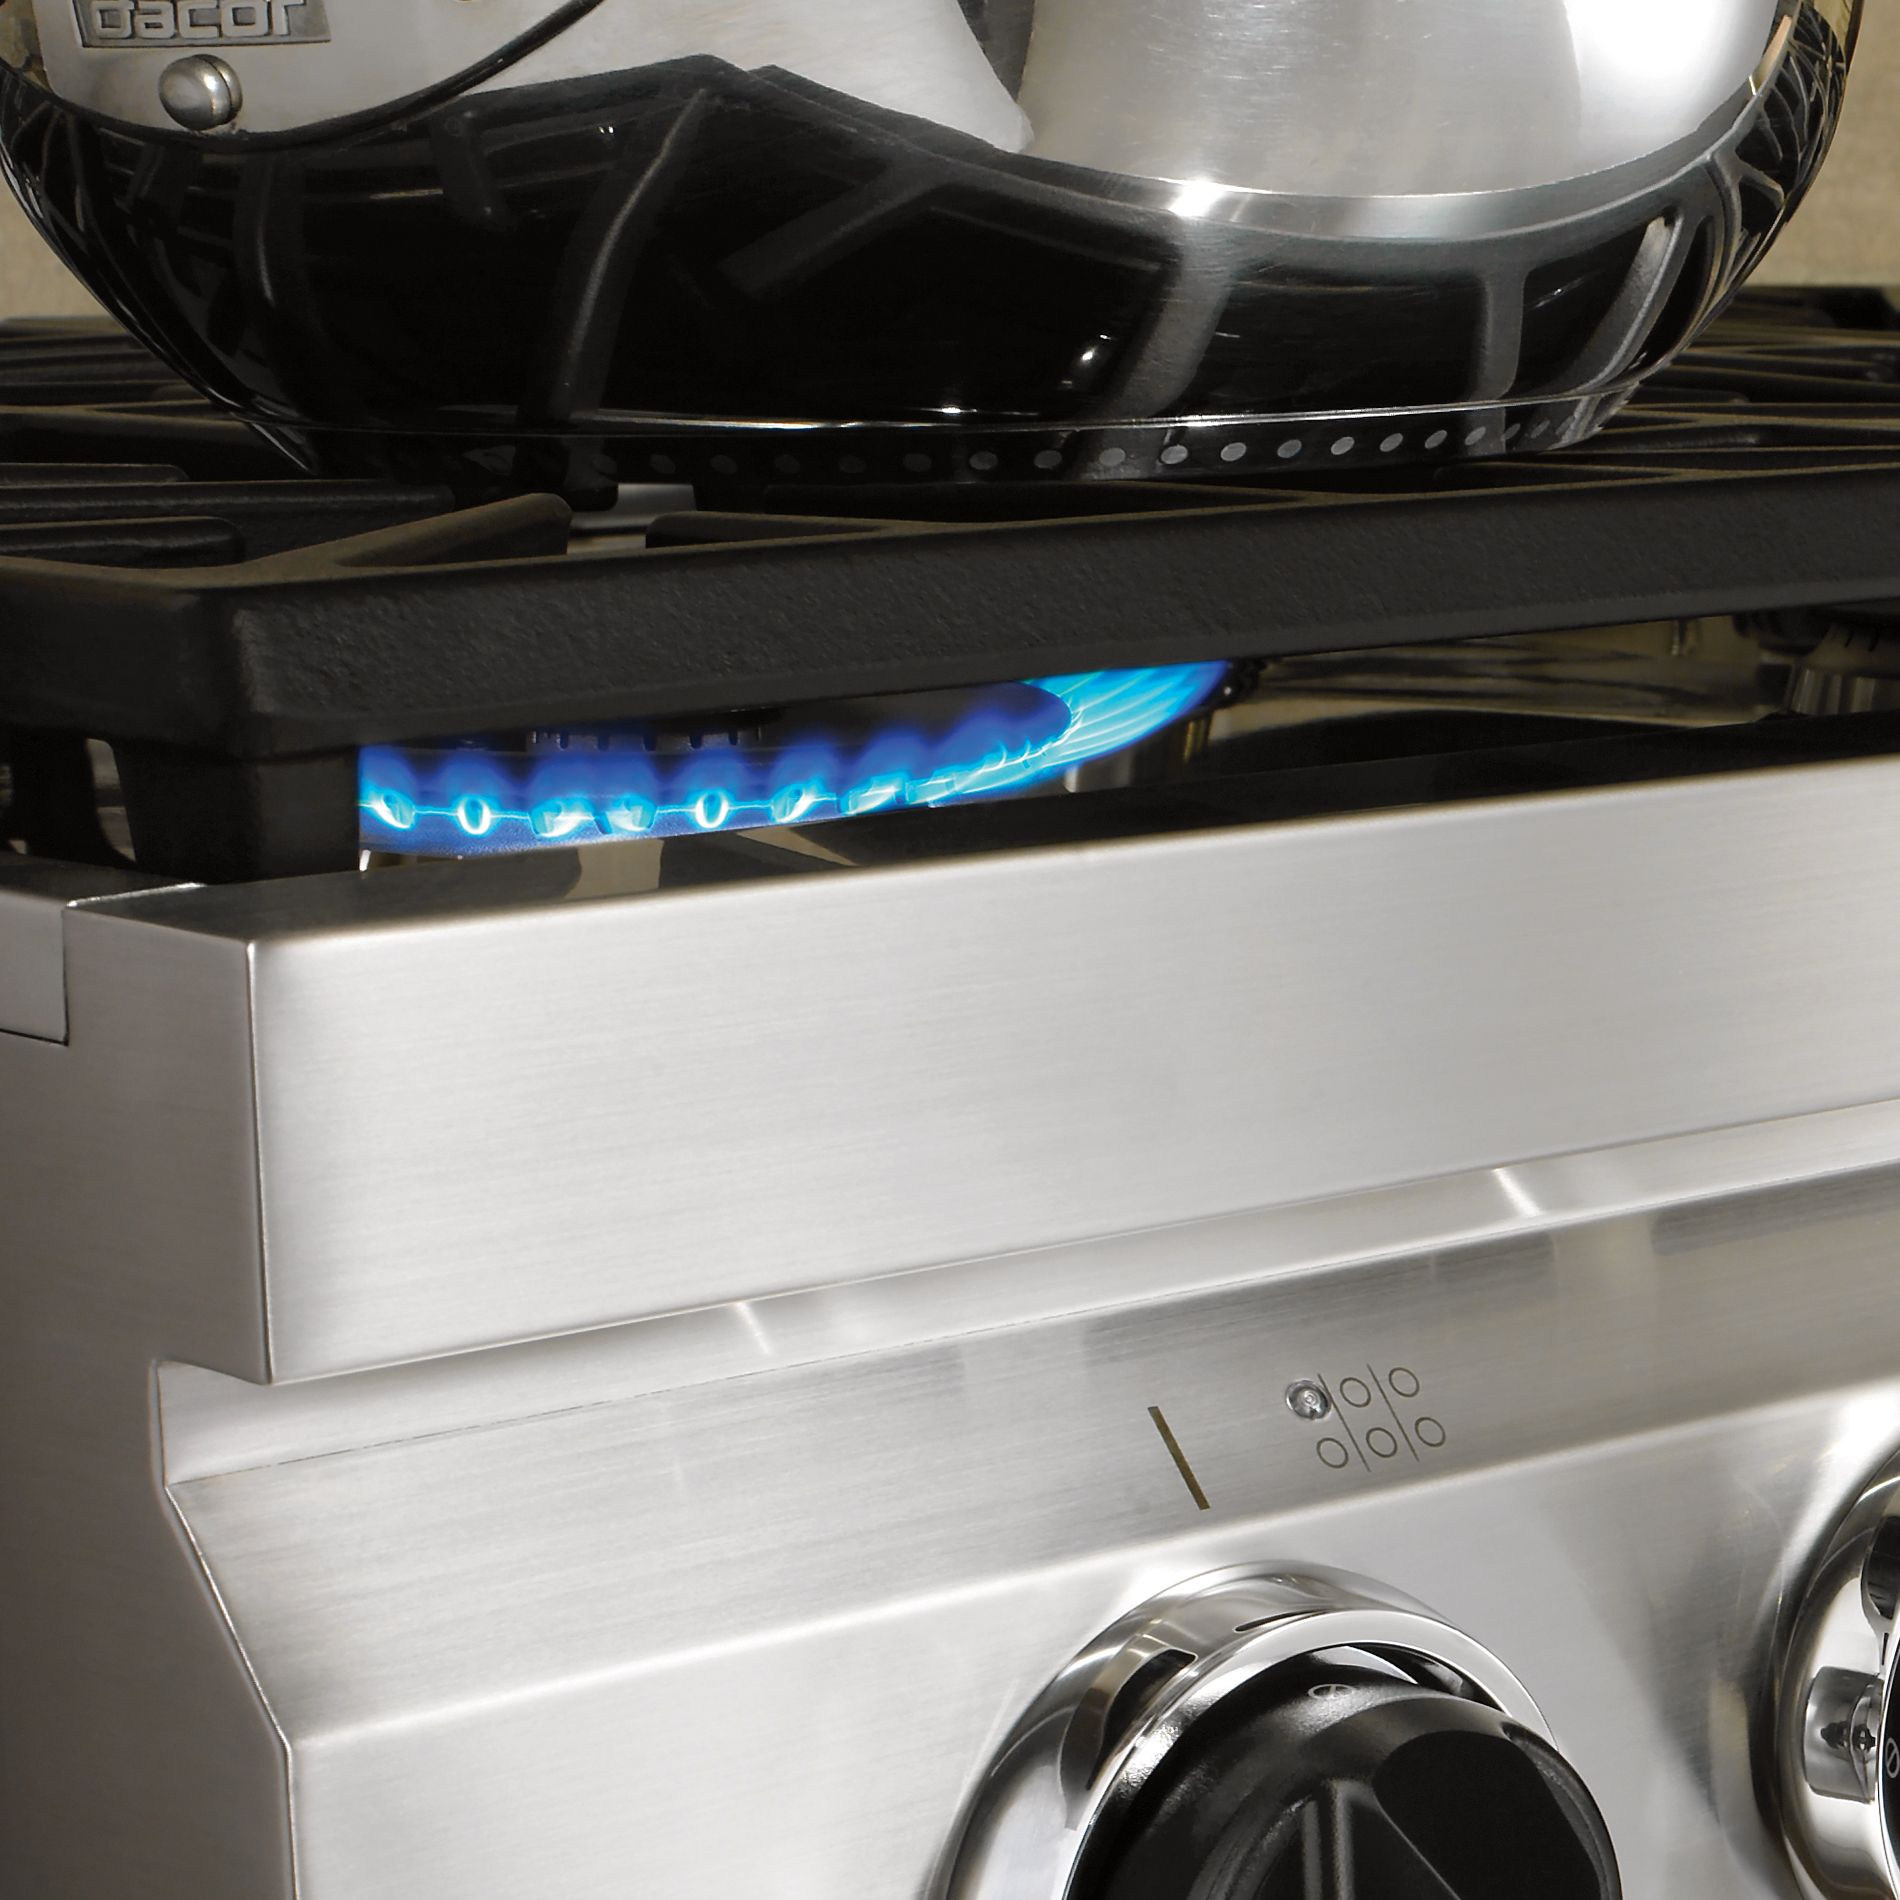 "Dacor Distinctive 36"" Gas Rangetop, Stainless Steel - High-Altitude Liquid Propane"